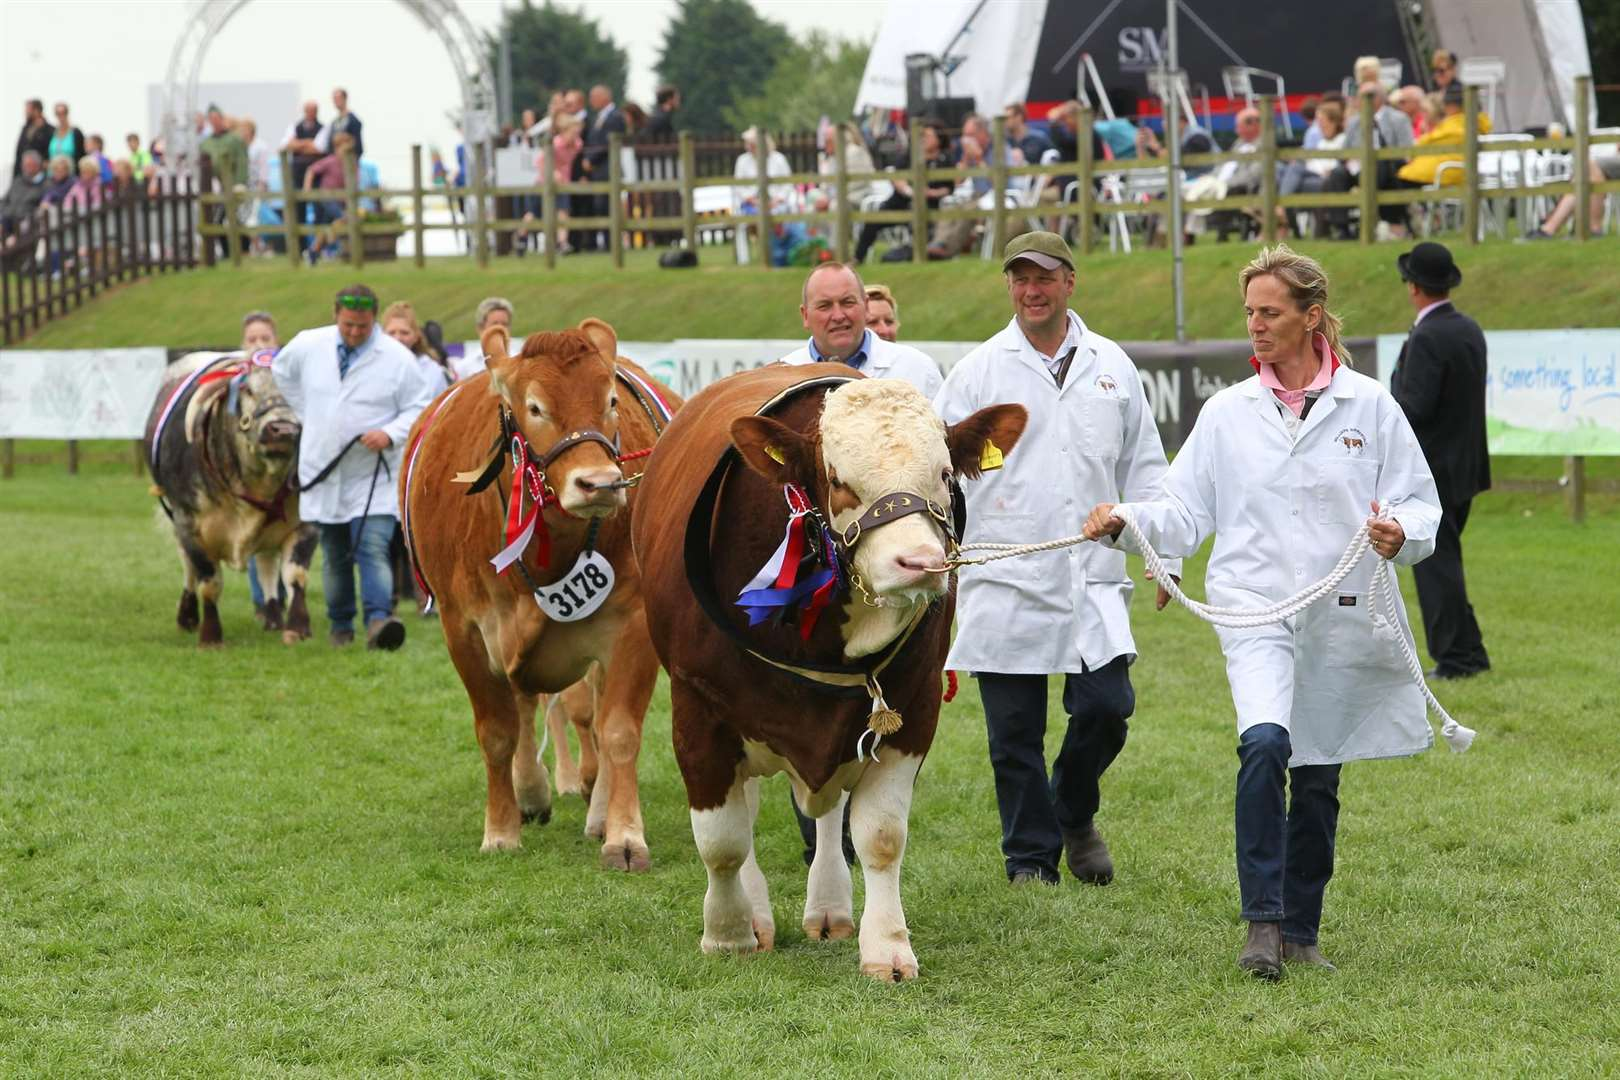 A cattle class at last year's show. (2447280)